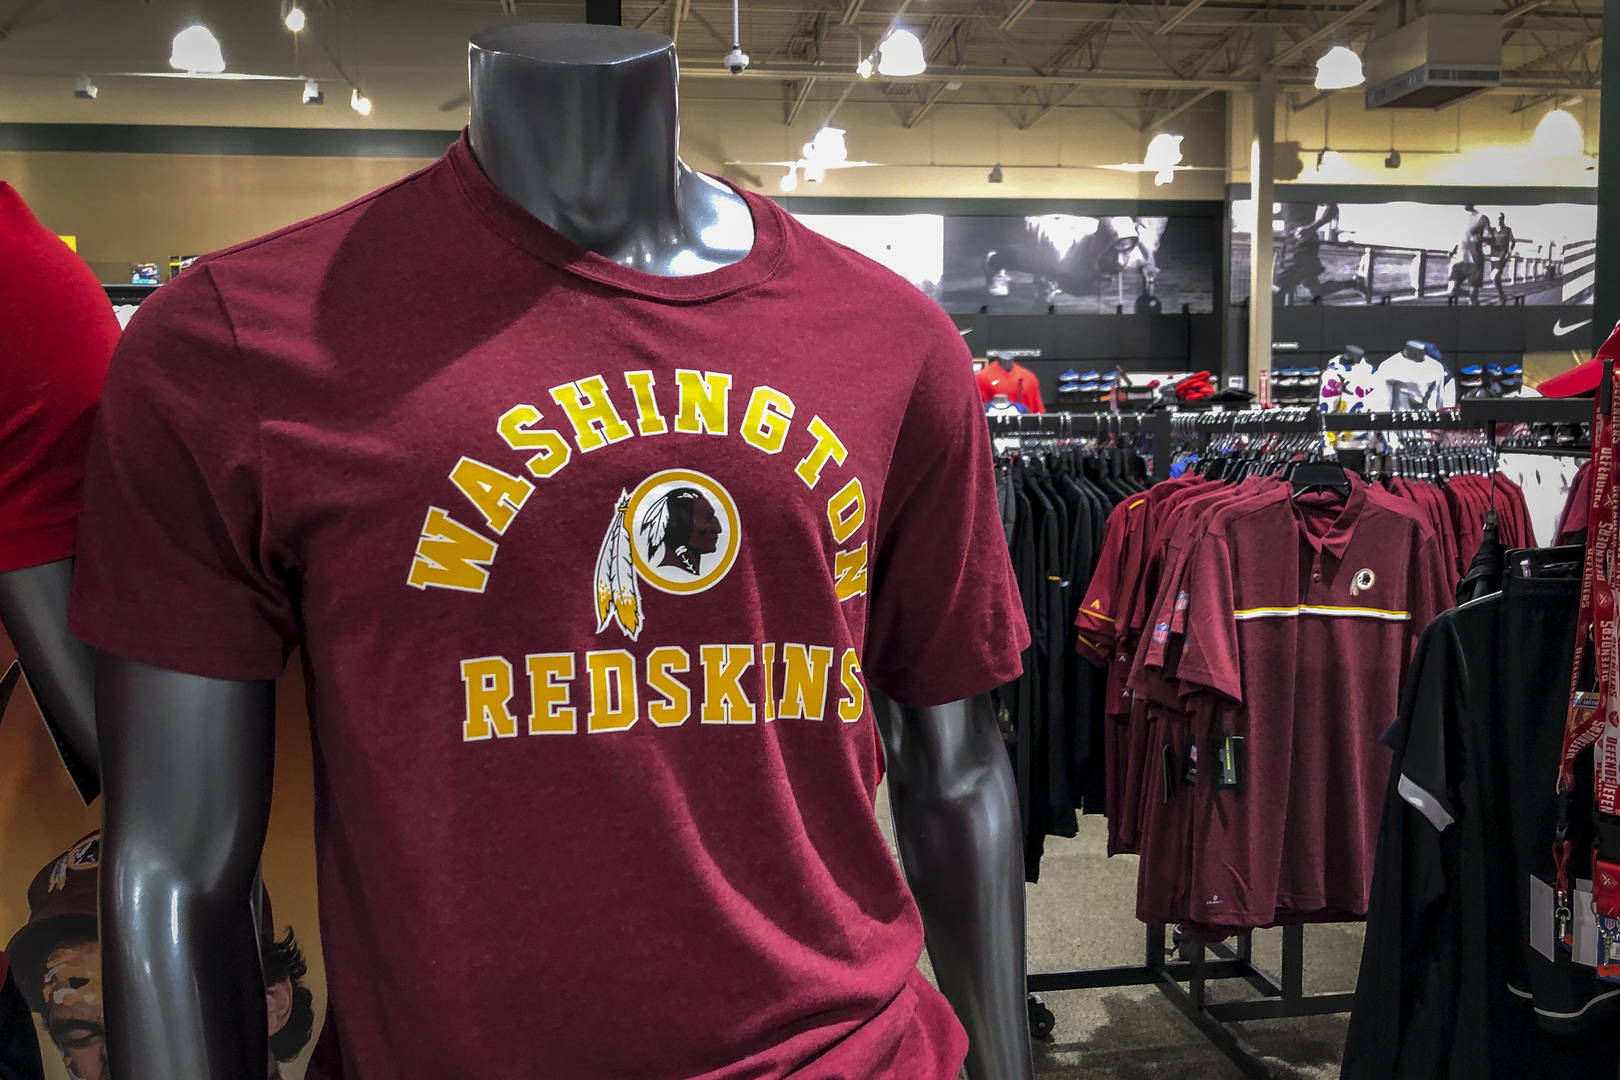 Redskins, Washington, NAme